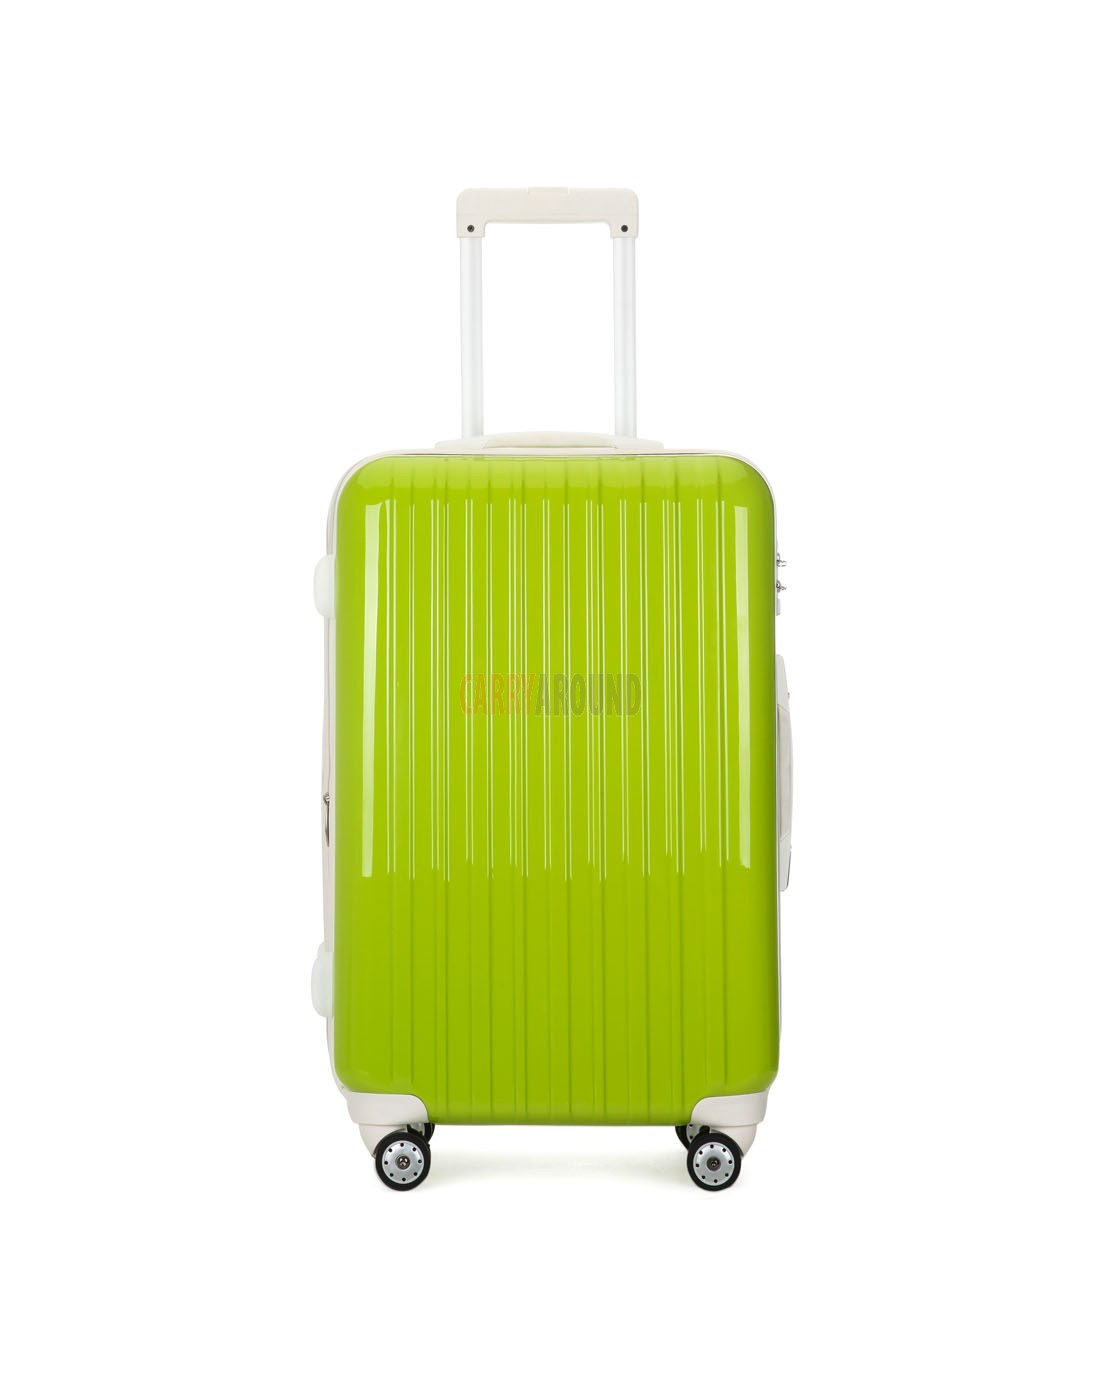 """AIRCROSS 2PC Set Luggage A55 Light Green Hard Case Expandable Trolley Luggage - 24""""26"""""""